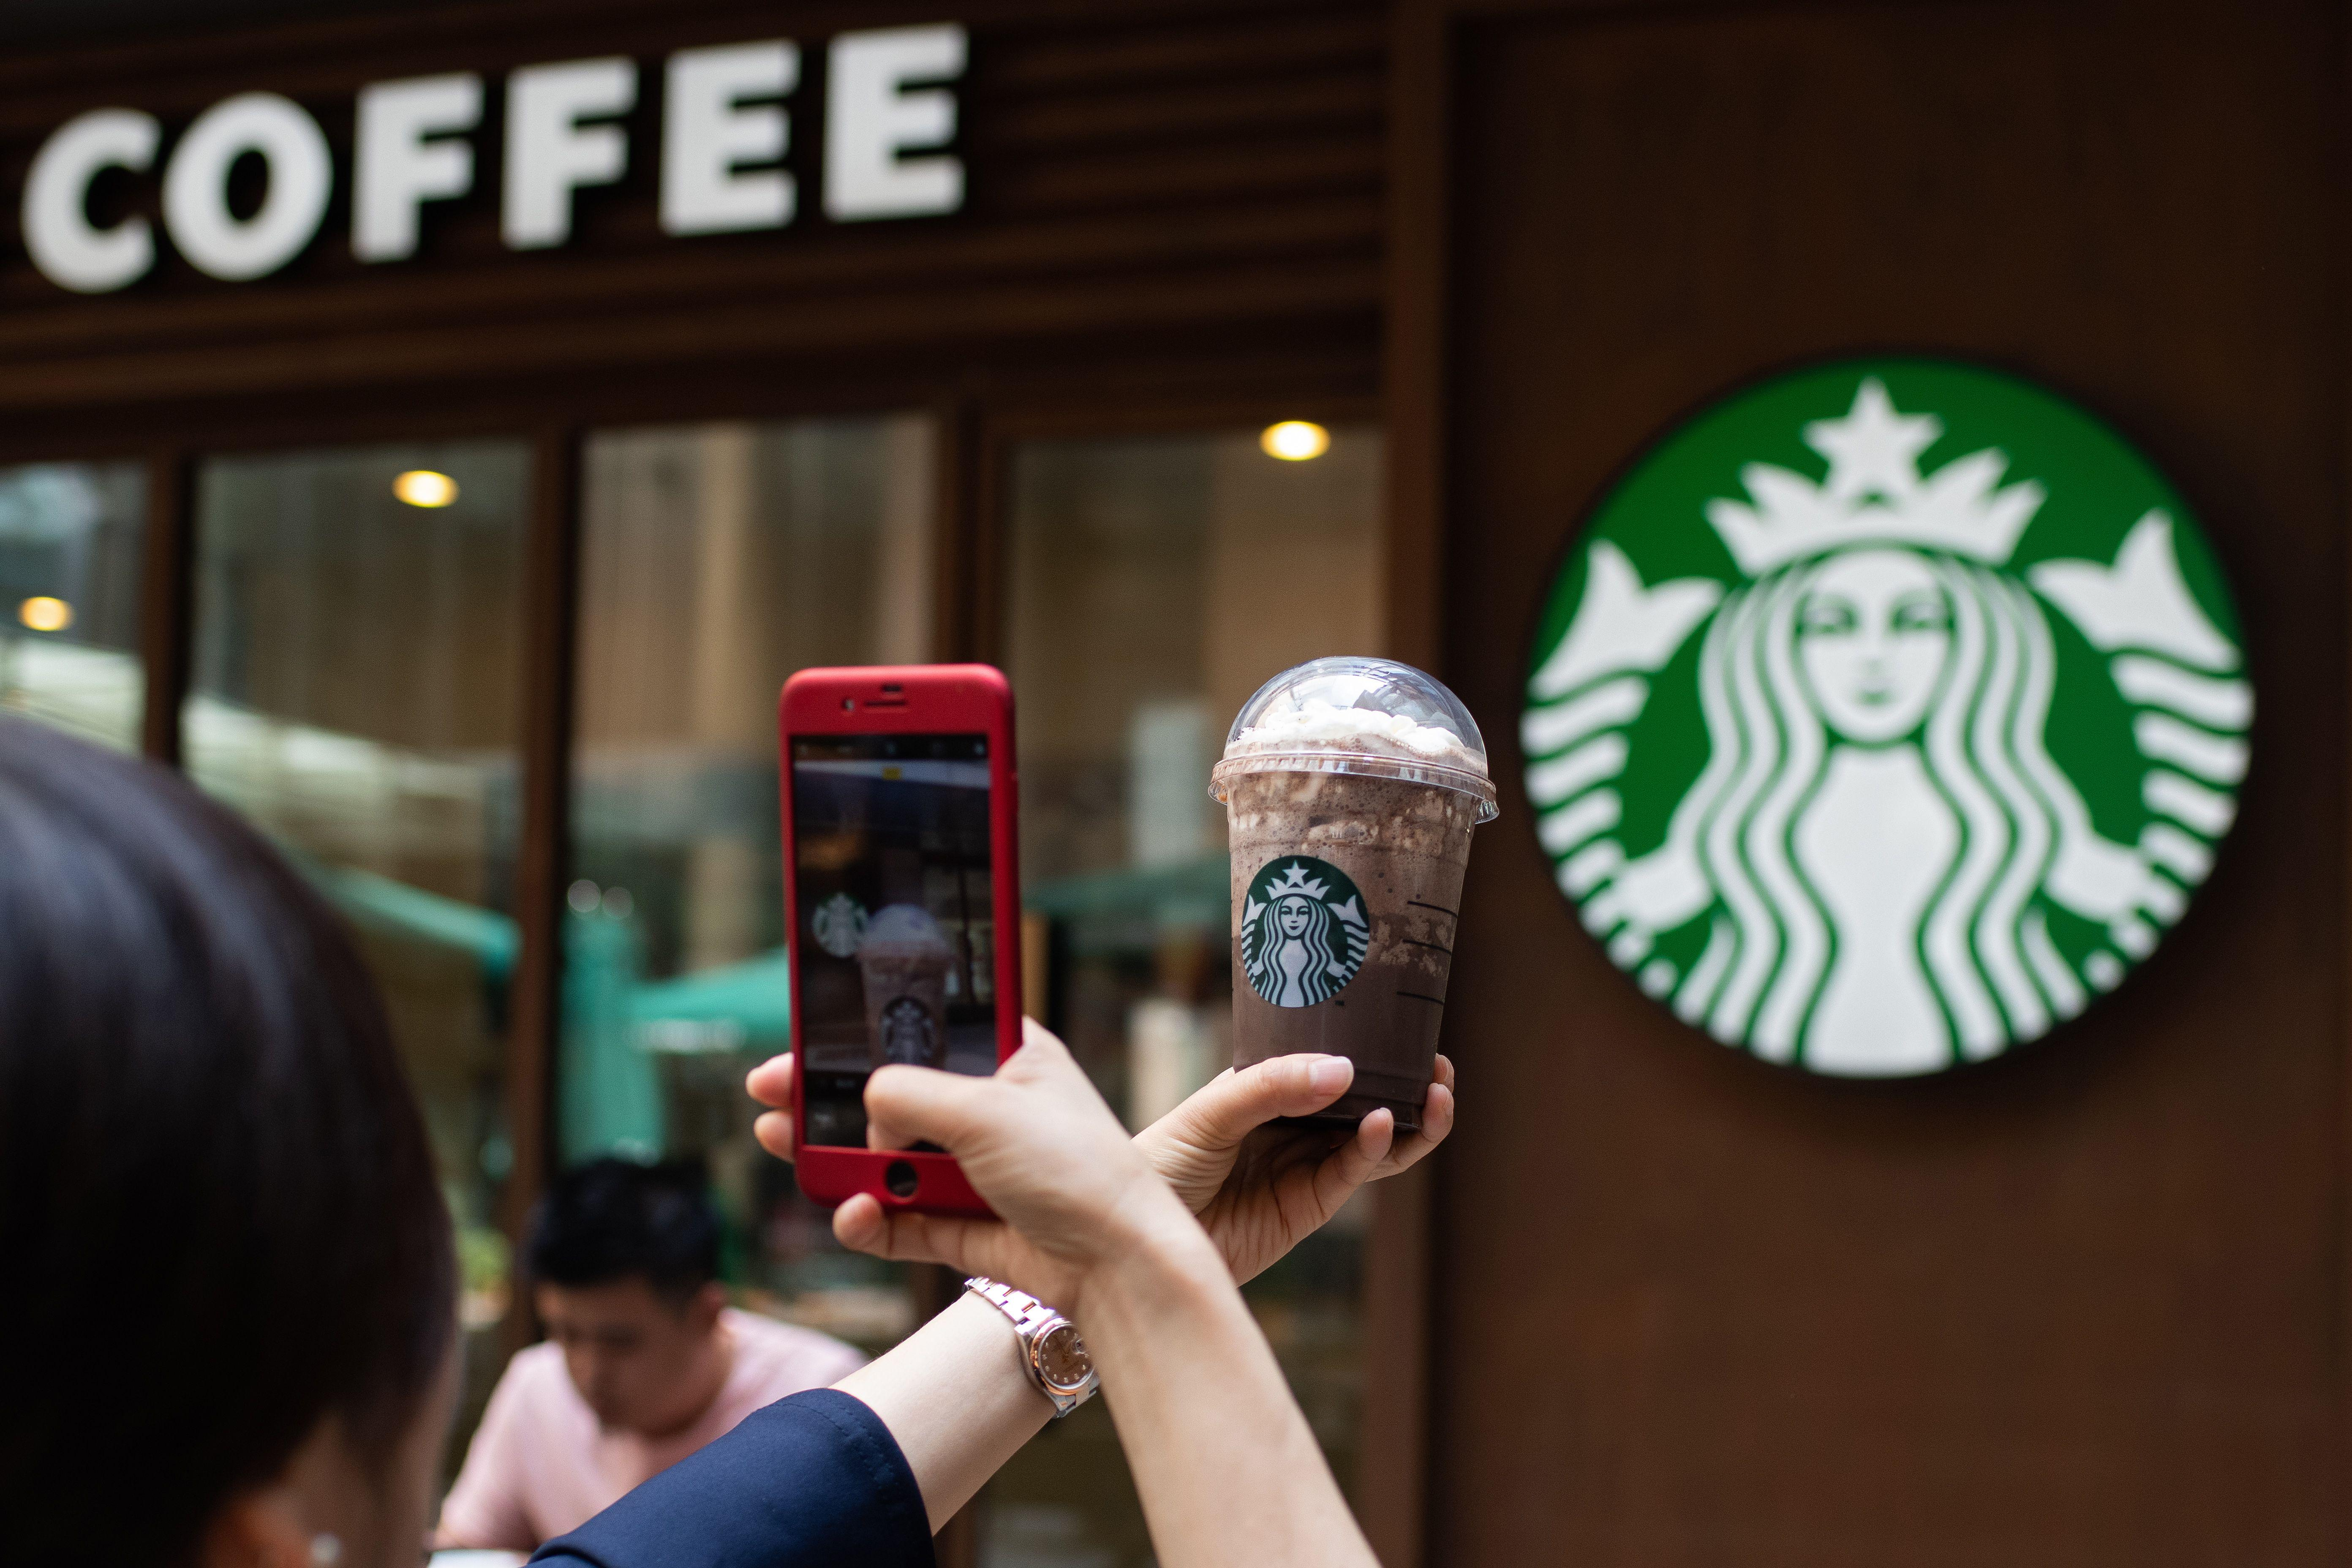 Coffee Maker Starbucks Sees Slower Profit Growth In 2020